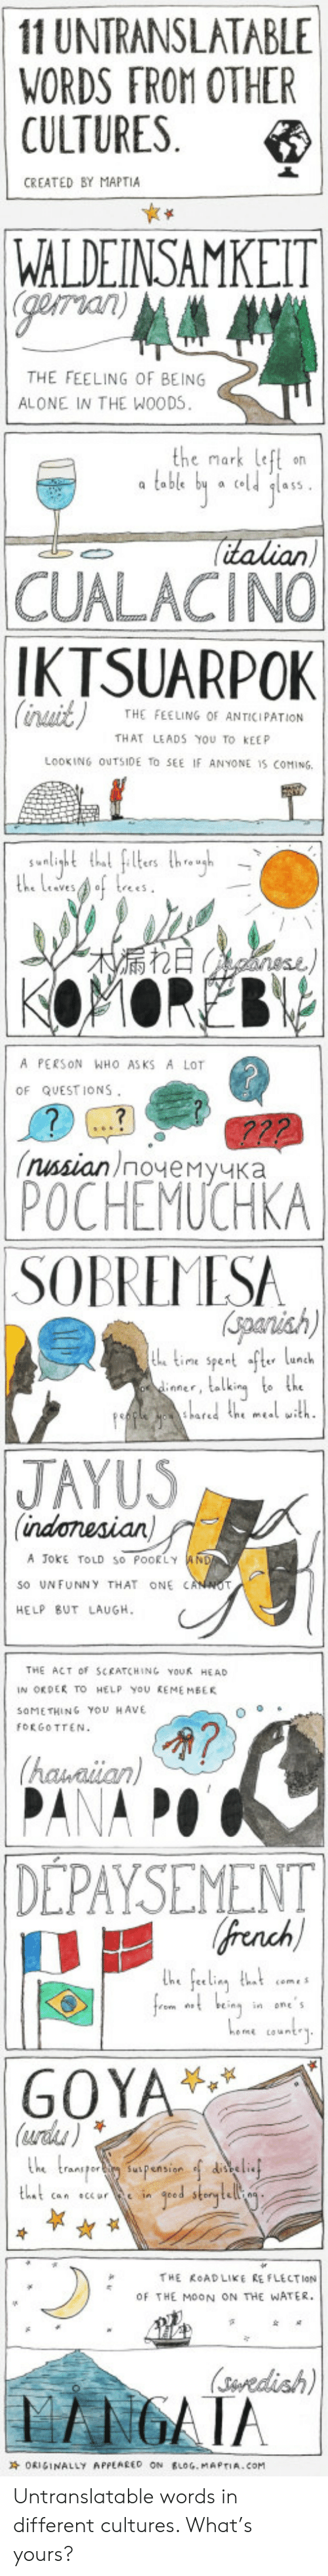 Goya: 11 UNTRANSLATABLE  WORDS FROM OTHER  CULTURES  CREATED BY MAPTIA  WALDEINSAMKEIT  gorian  THE FEELING OF BEING  ALONE IN THE WOODS  the mark left on  a table by a old lass  italian  CUALACINO  IKTSUARPOK  Cinait)  THE FEELING OF ANTICIPATION  THAT LEADS YOU TO KEEP  LOOKING OUTSIDE TO SEE IF ANYONE 1S COMING  rht tht fles thgh  the LevesA of trees  RECanene  A PERSON WHO AS KS A LOT  OF QUEST IONS  (пиsian)noчемучка  POCHEMUCHKA  SOBREMESA  iperish)  t time spent ft lunch  iner, telking to the  lared he meal with  JAYUS  (indonesian  A JokE TOLD so POORLY  so UNFUNNY THAT ONE CANNO  HELP BUT LAUGH  (hauniian  DEPAYSEMENT  french  he feeling thut  from nsing inane's  ome count  GOYA  (urds)  he transperpnsion delif  tat can ccar in geed storytelli  THE ROADLIKE RE FLECTION  OF THE MOON ON THE WATER  (Seredish  GATA Untranslatable words in different cultures. What's yours?